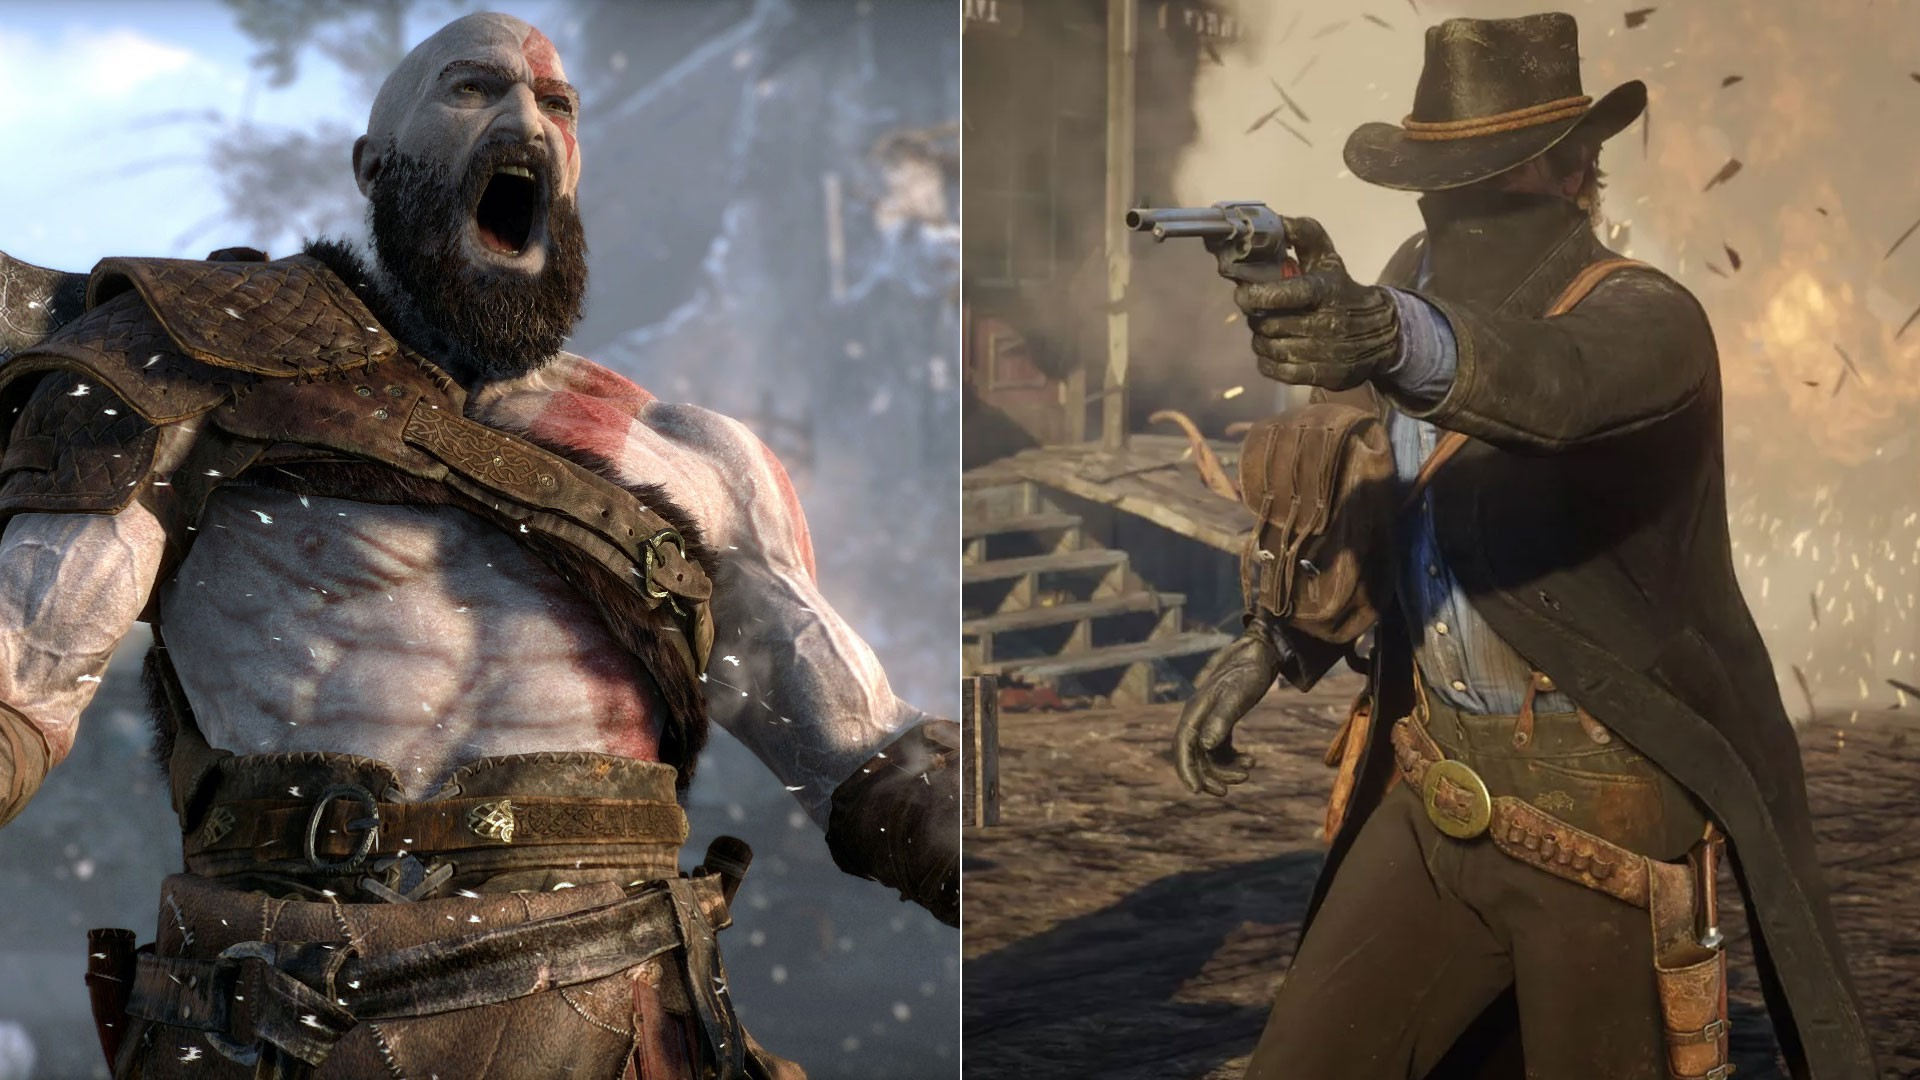 Game Awards 2018: 'God of War' e 'Red Dead Redemption 2' lideram indicações - Radio Evangelho Gospel